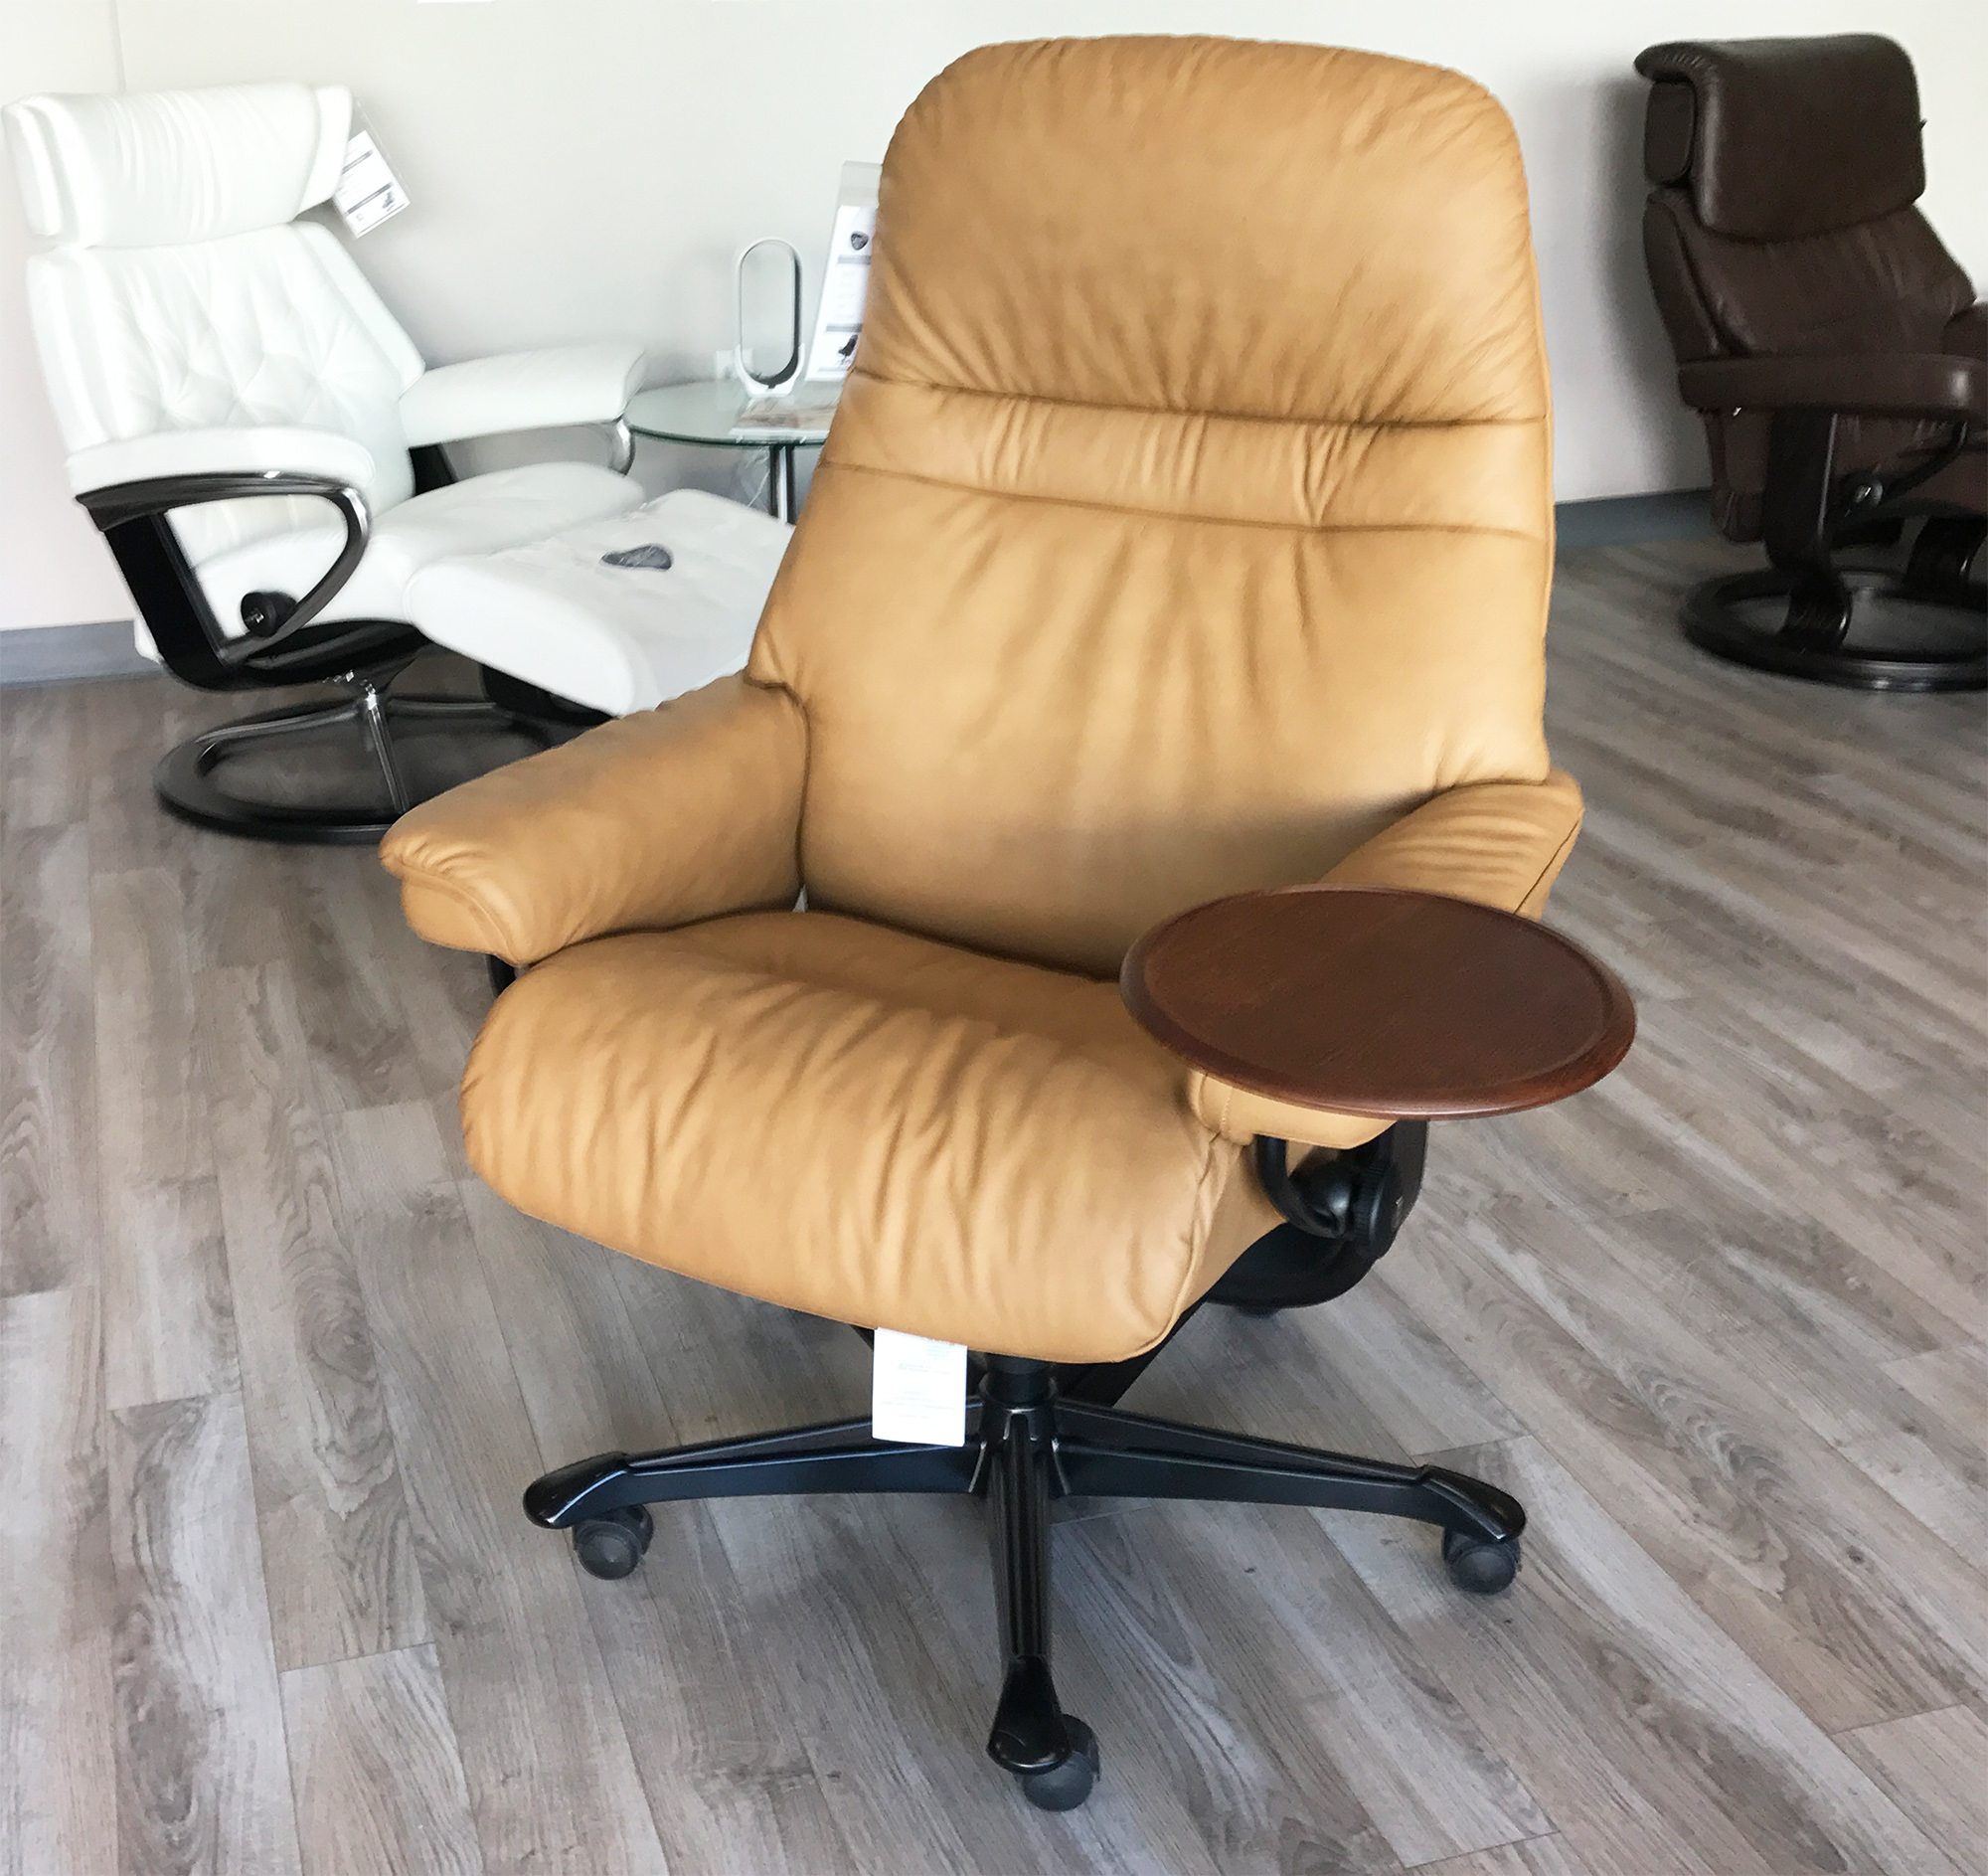 Stressless Paloma Stressless Sunrise Office Desk Chair Paloma Taupe Leather By Ekornes